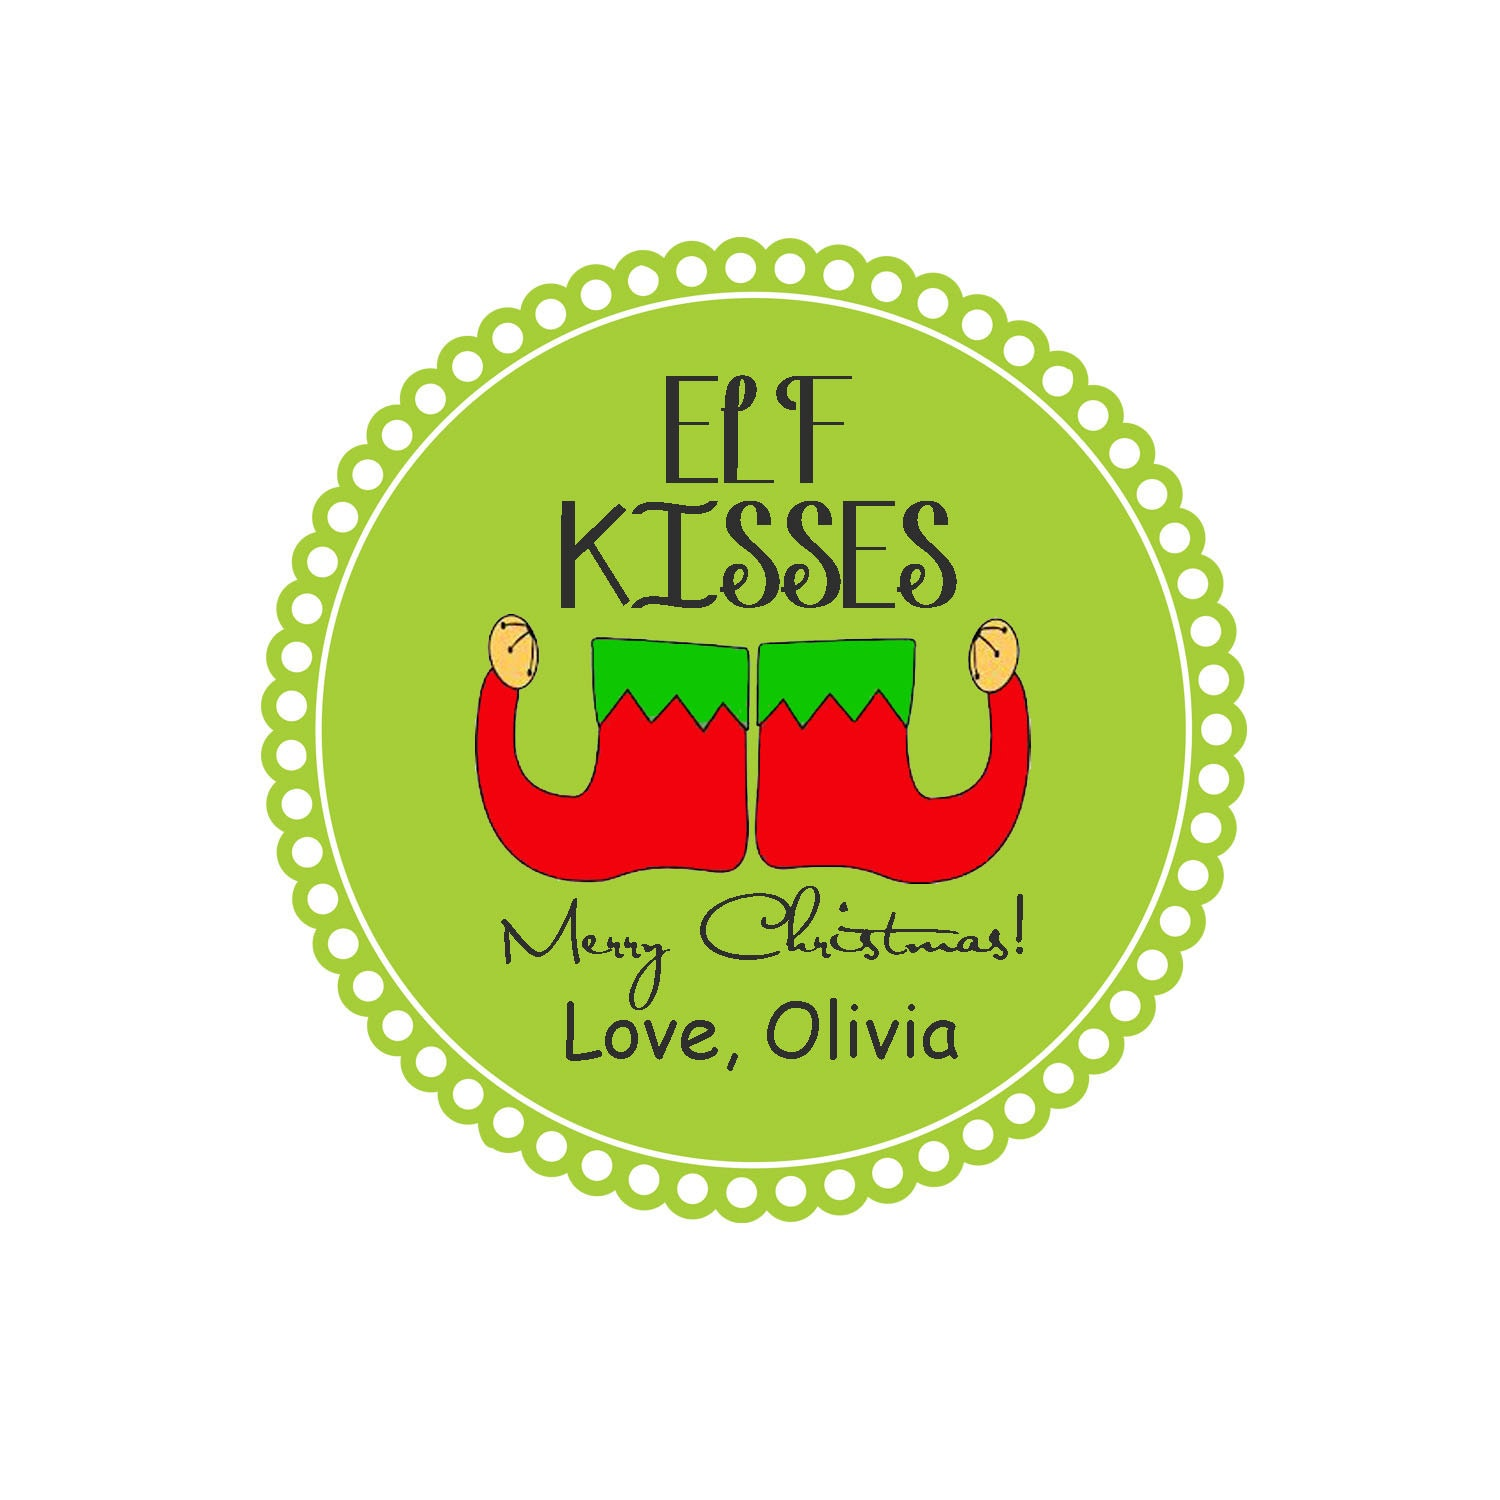 Personalized ELF KISSES Tags Merry Christmas by OliviaKateDesigns